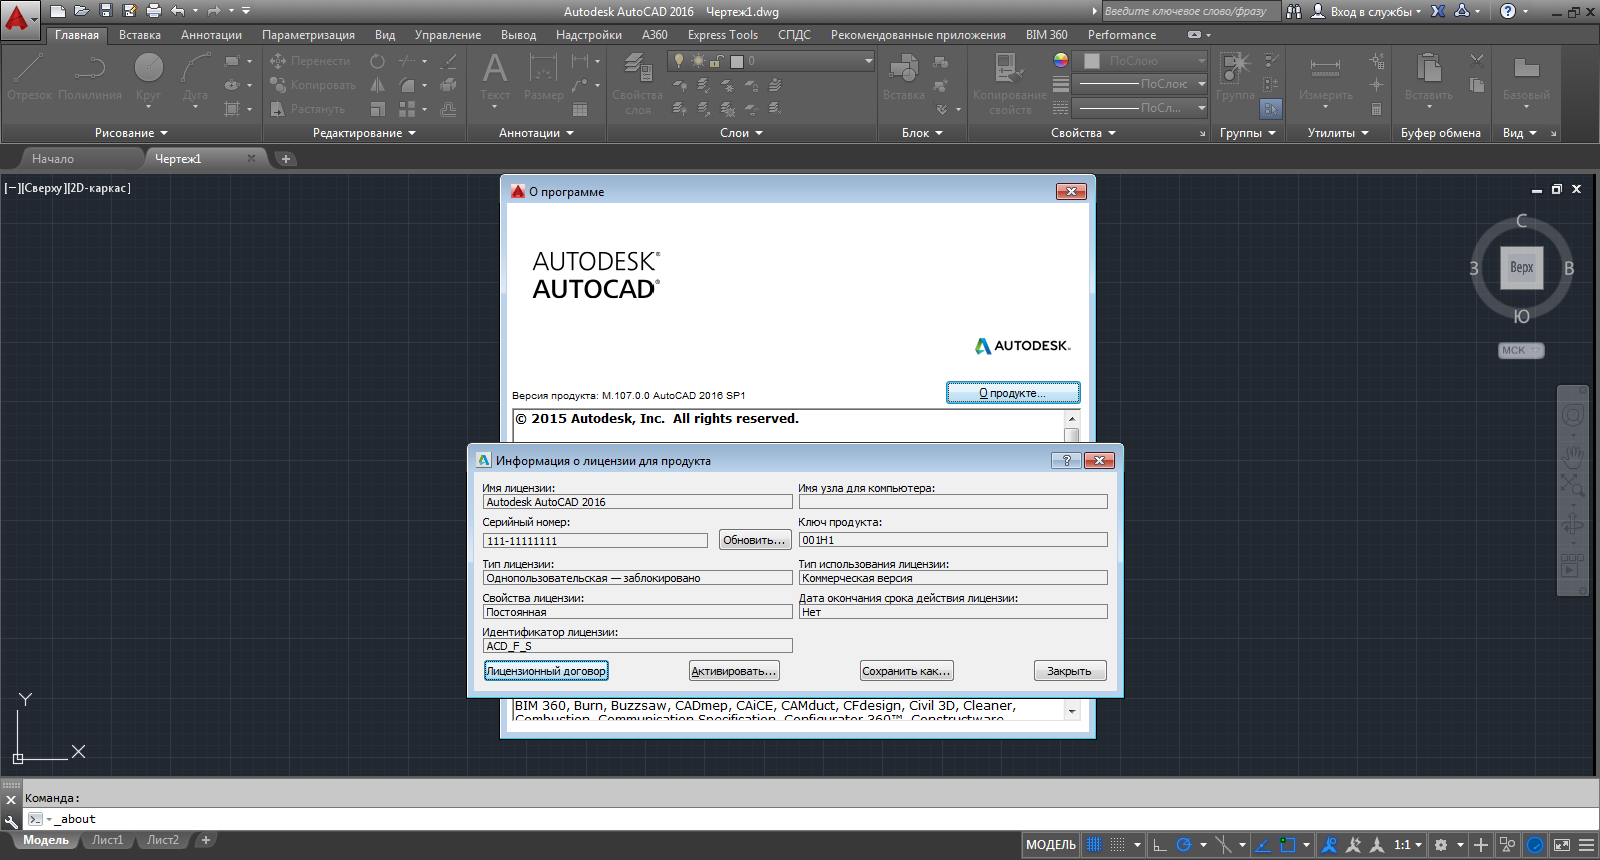 Autodesk AutoCAD 2016 SP1 with SPDS Extension